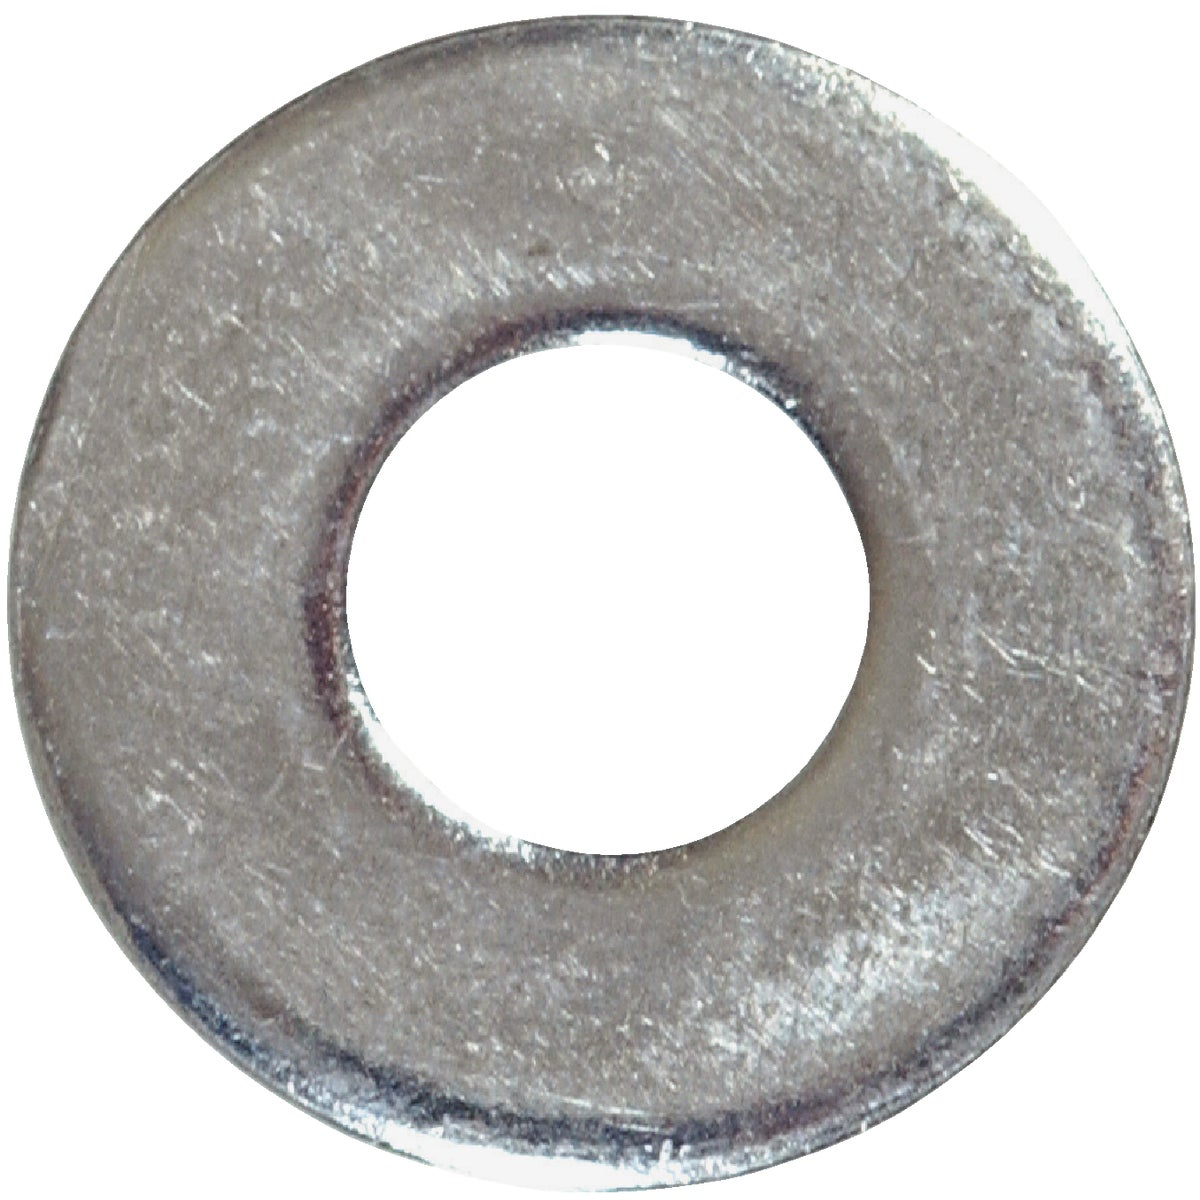 "5LB 1-1/2""USS FLT WASHER - 270045 by Hillman Fastener"